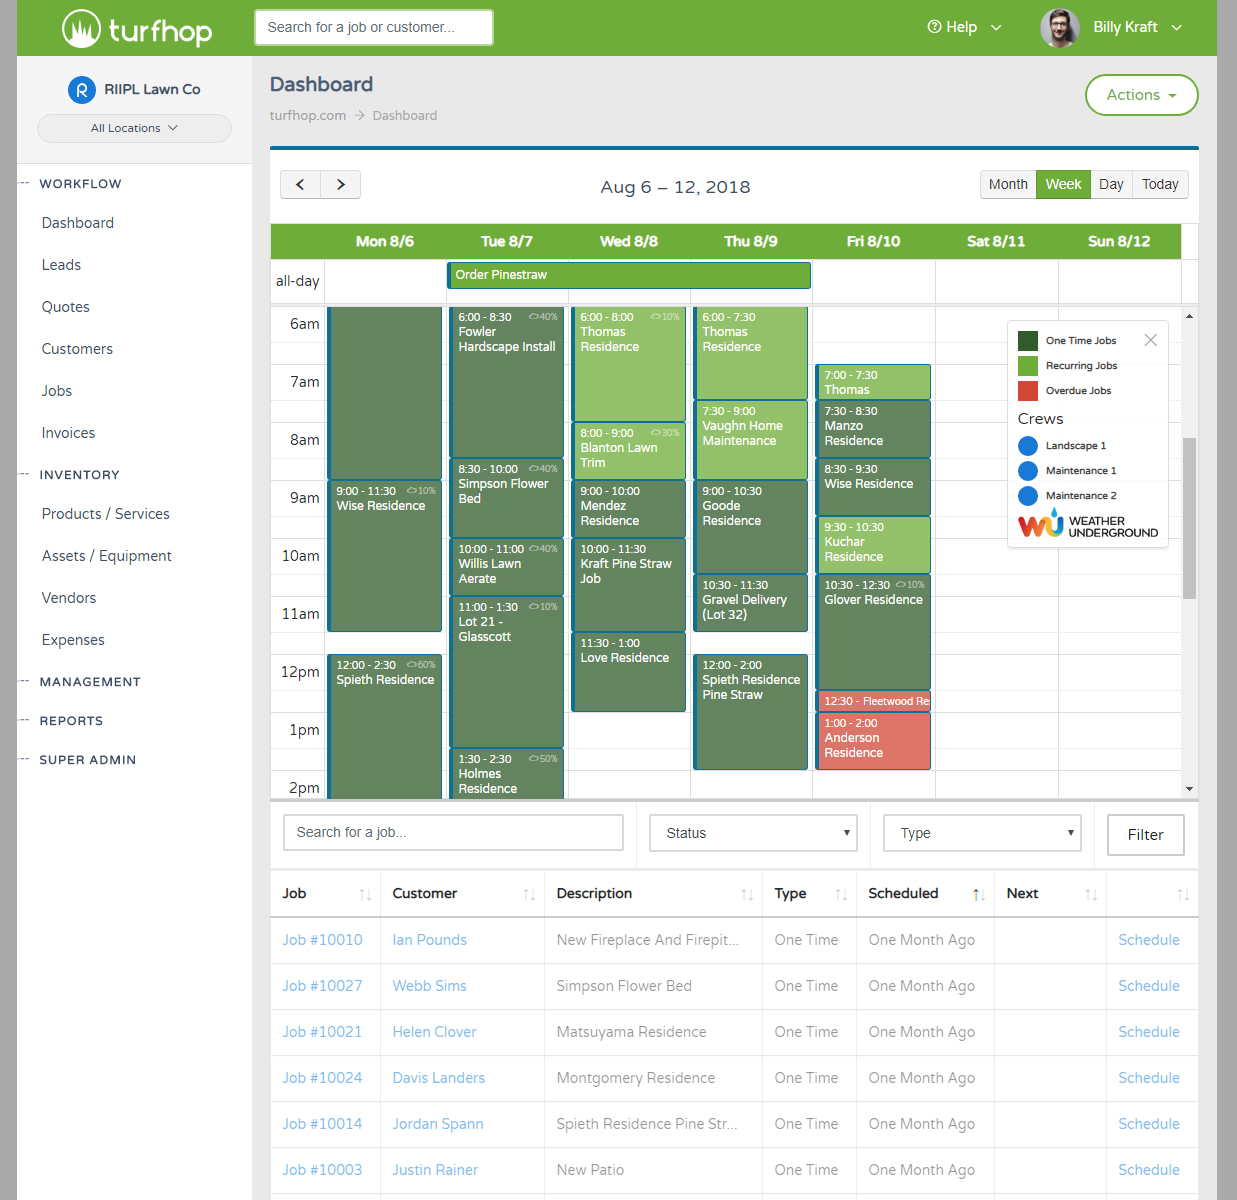 Scheduling Jobs - Scheduling Jobs - Lawn And Landscape Management Software